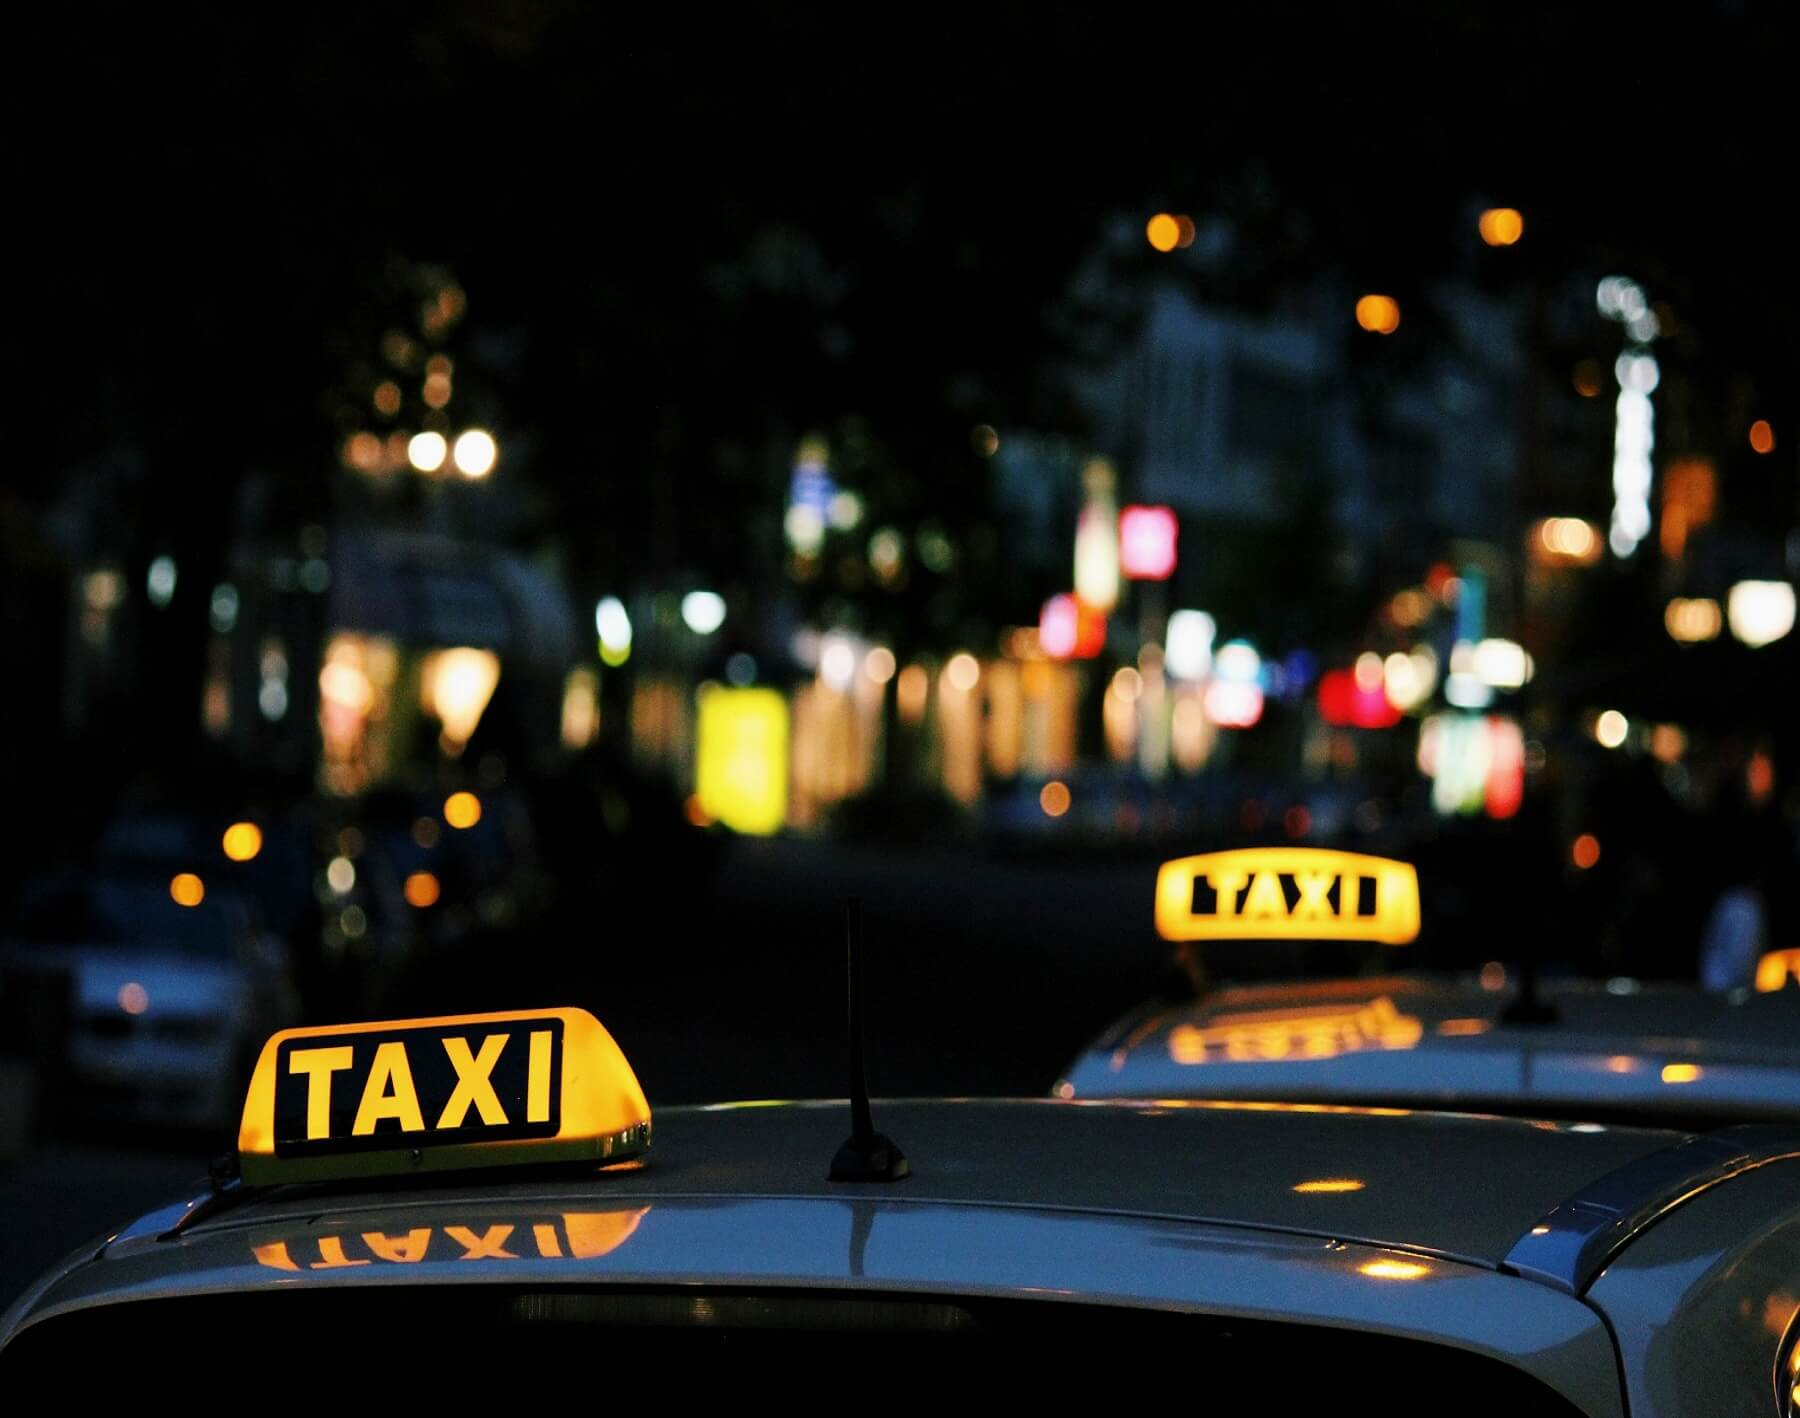 Taxis Belvedere, Sherbets Mini Cabs